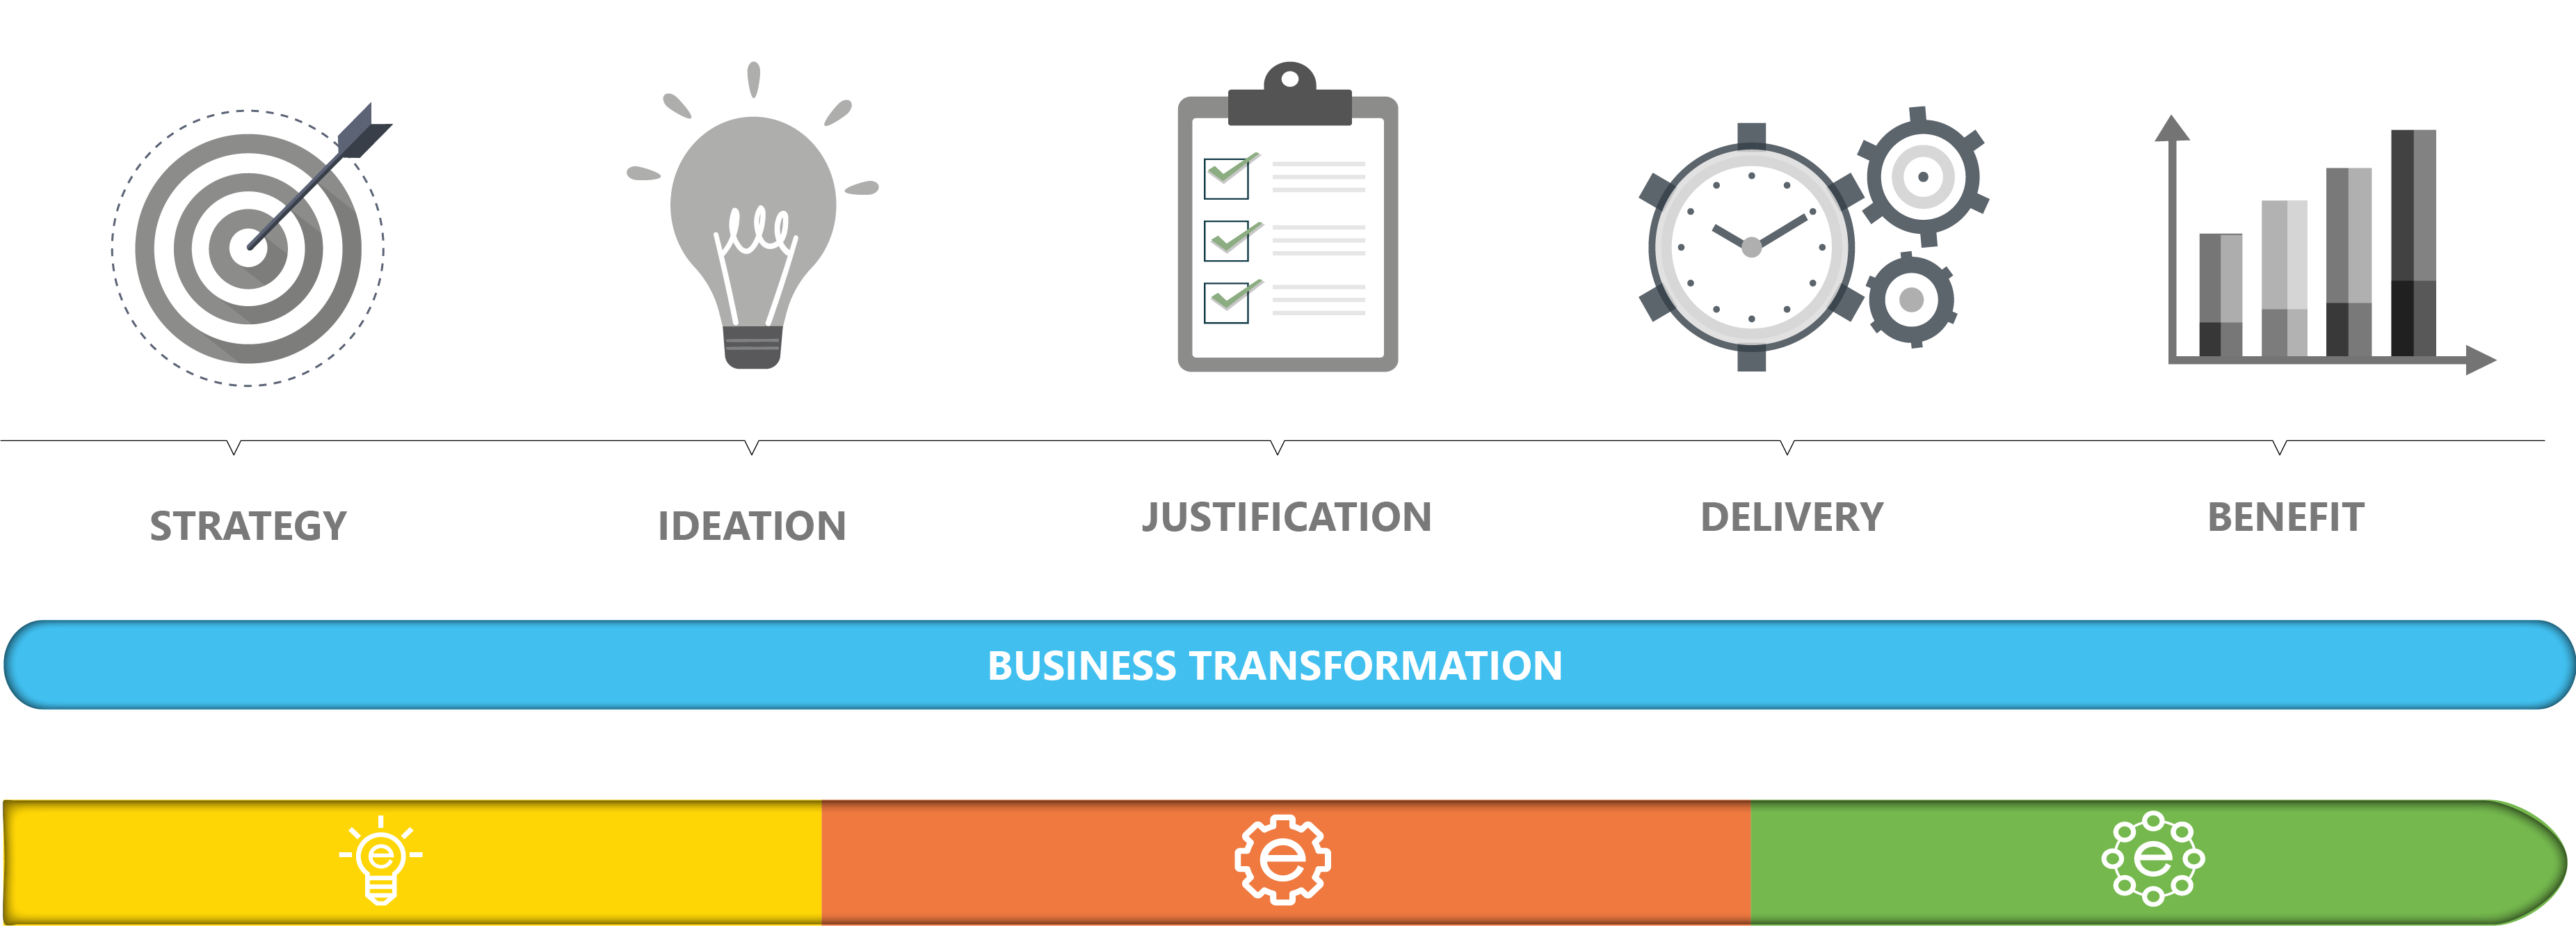 End-to-end business transformation process supported by edison365